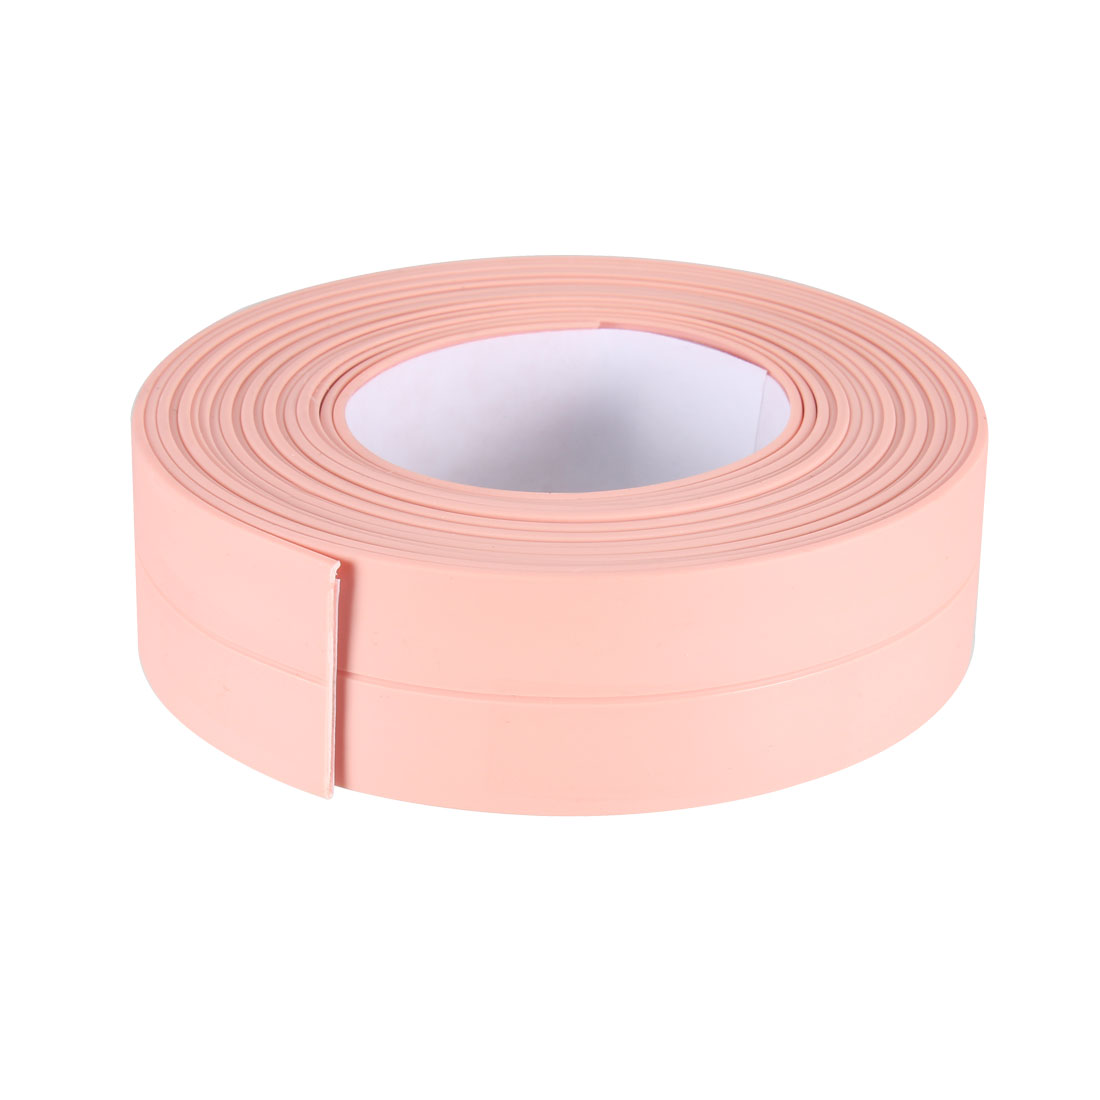 Caulk Strip Flexible Self Adhesive Tape for Wall Sealing 10.5ftx22mm (Pink)